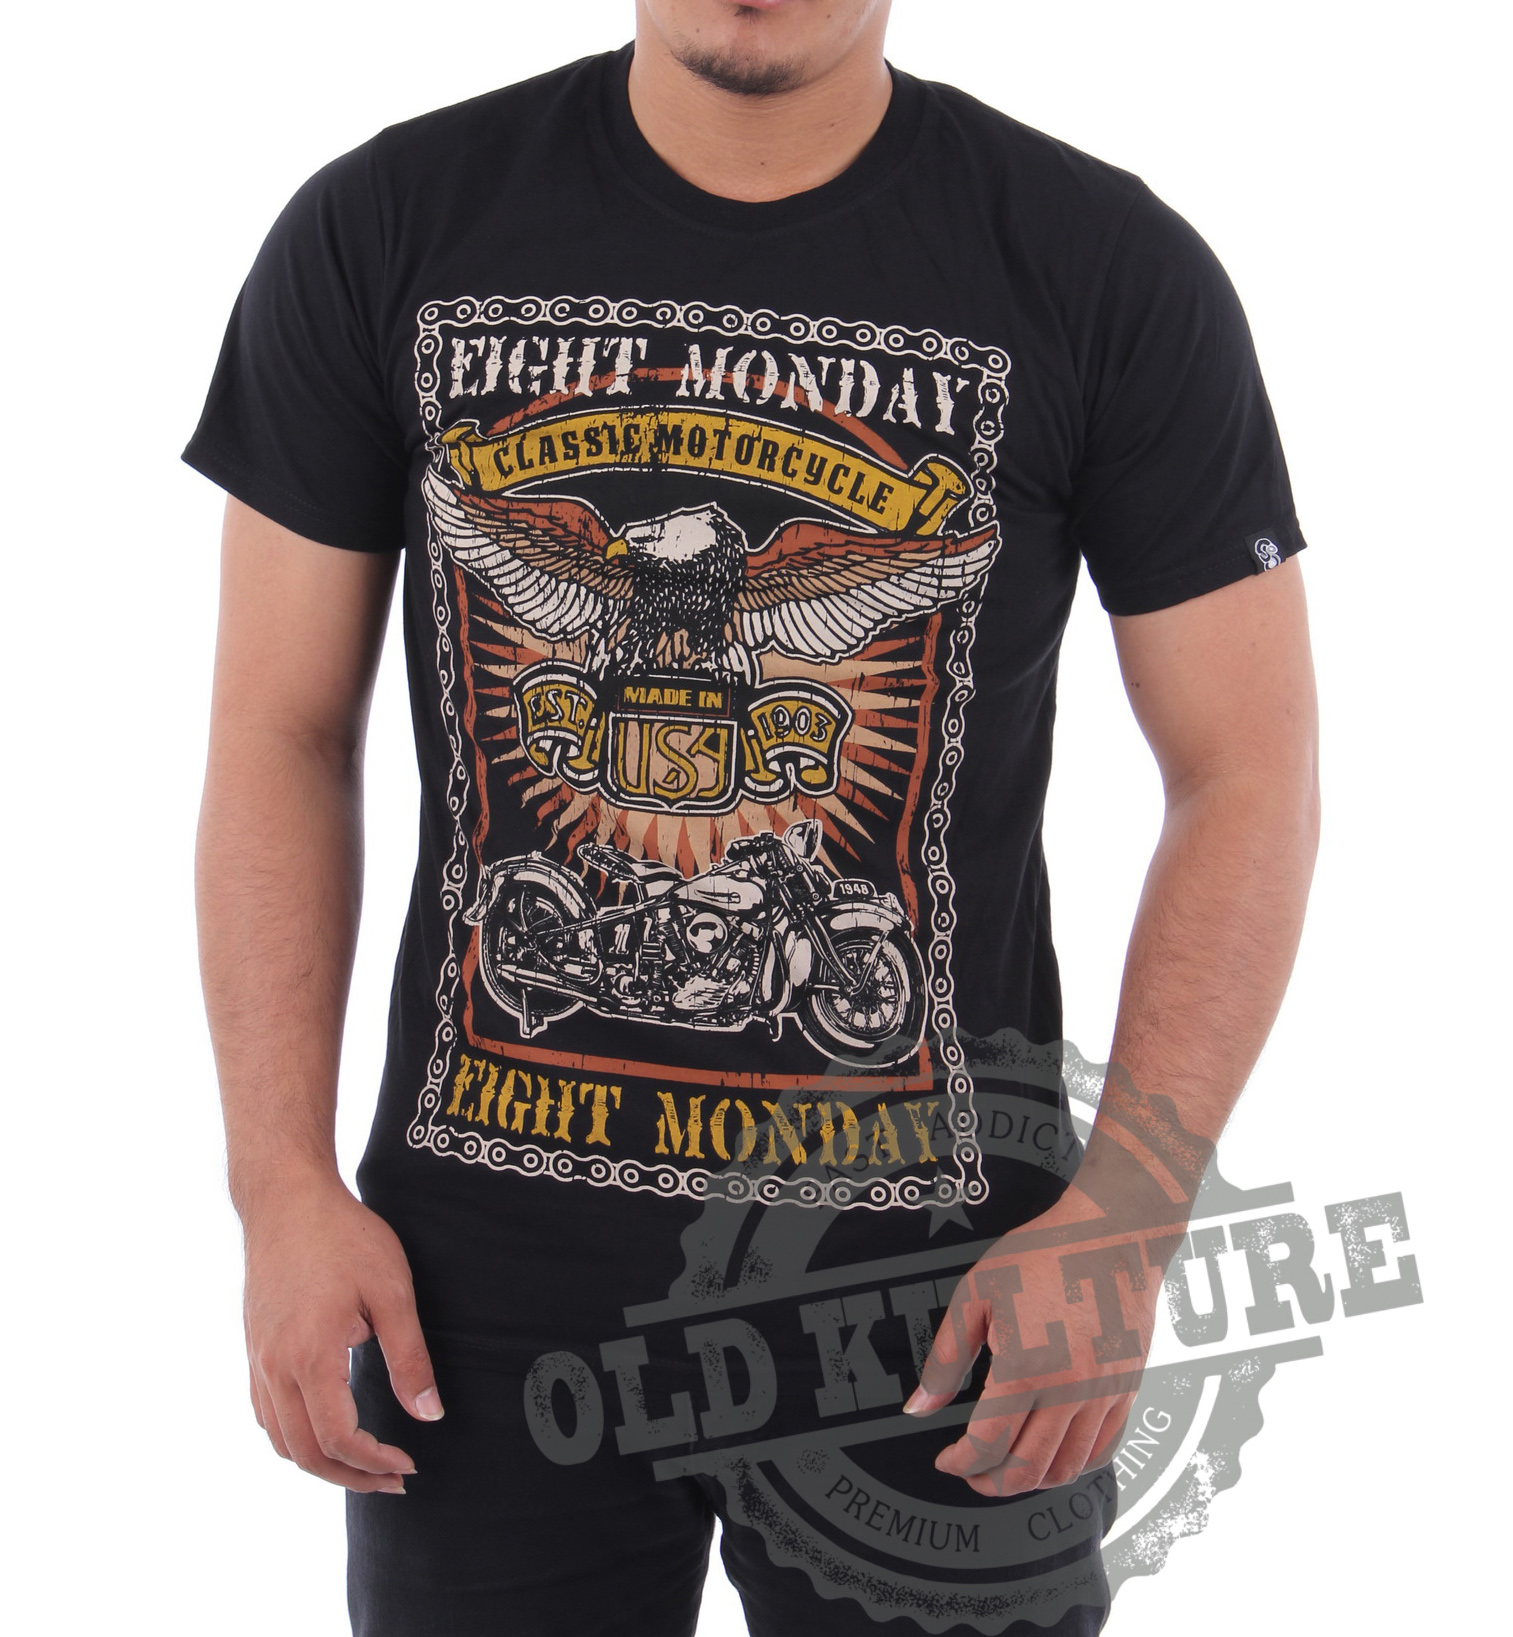 eight_monday_rockabilly_mens_shirt_harley_eagle_motorcycle_choppers_em03_t_shirts_5.jpg